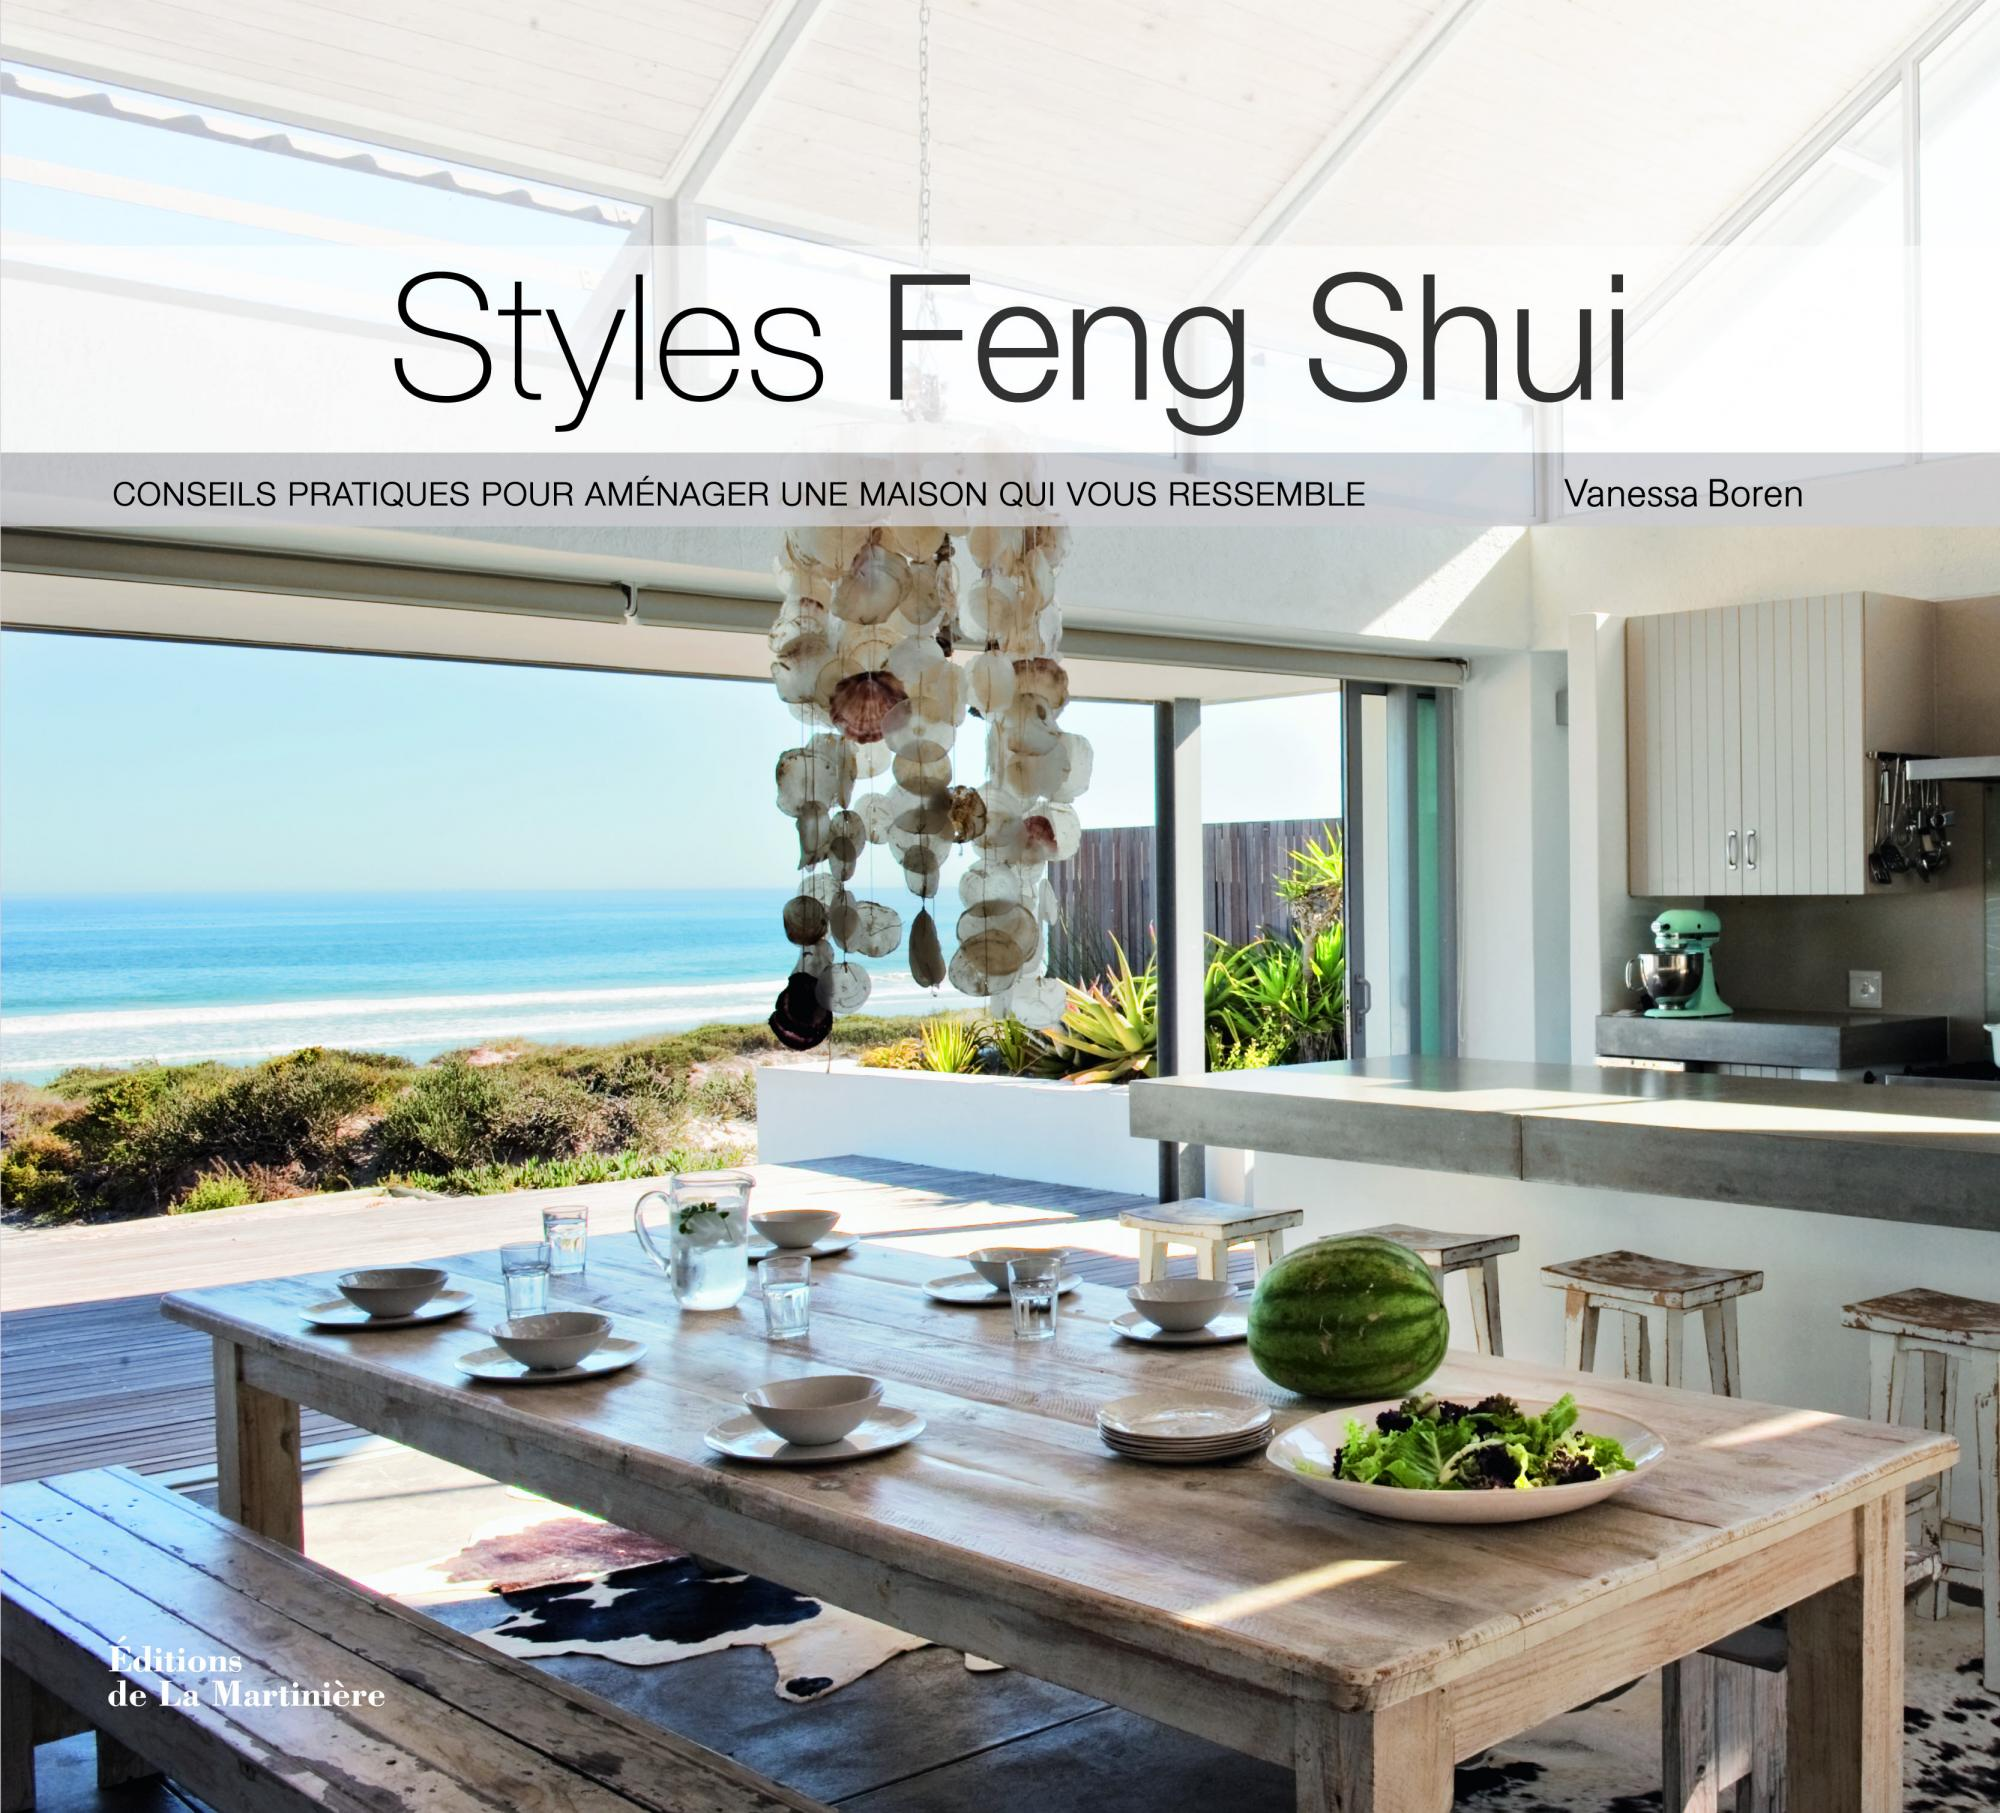 Styles feng shui vanessa boren editions de la martini re for Couleur feng shui salon